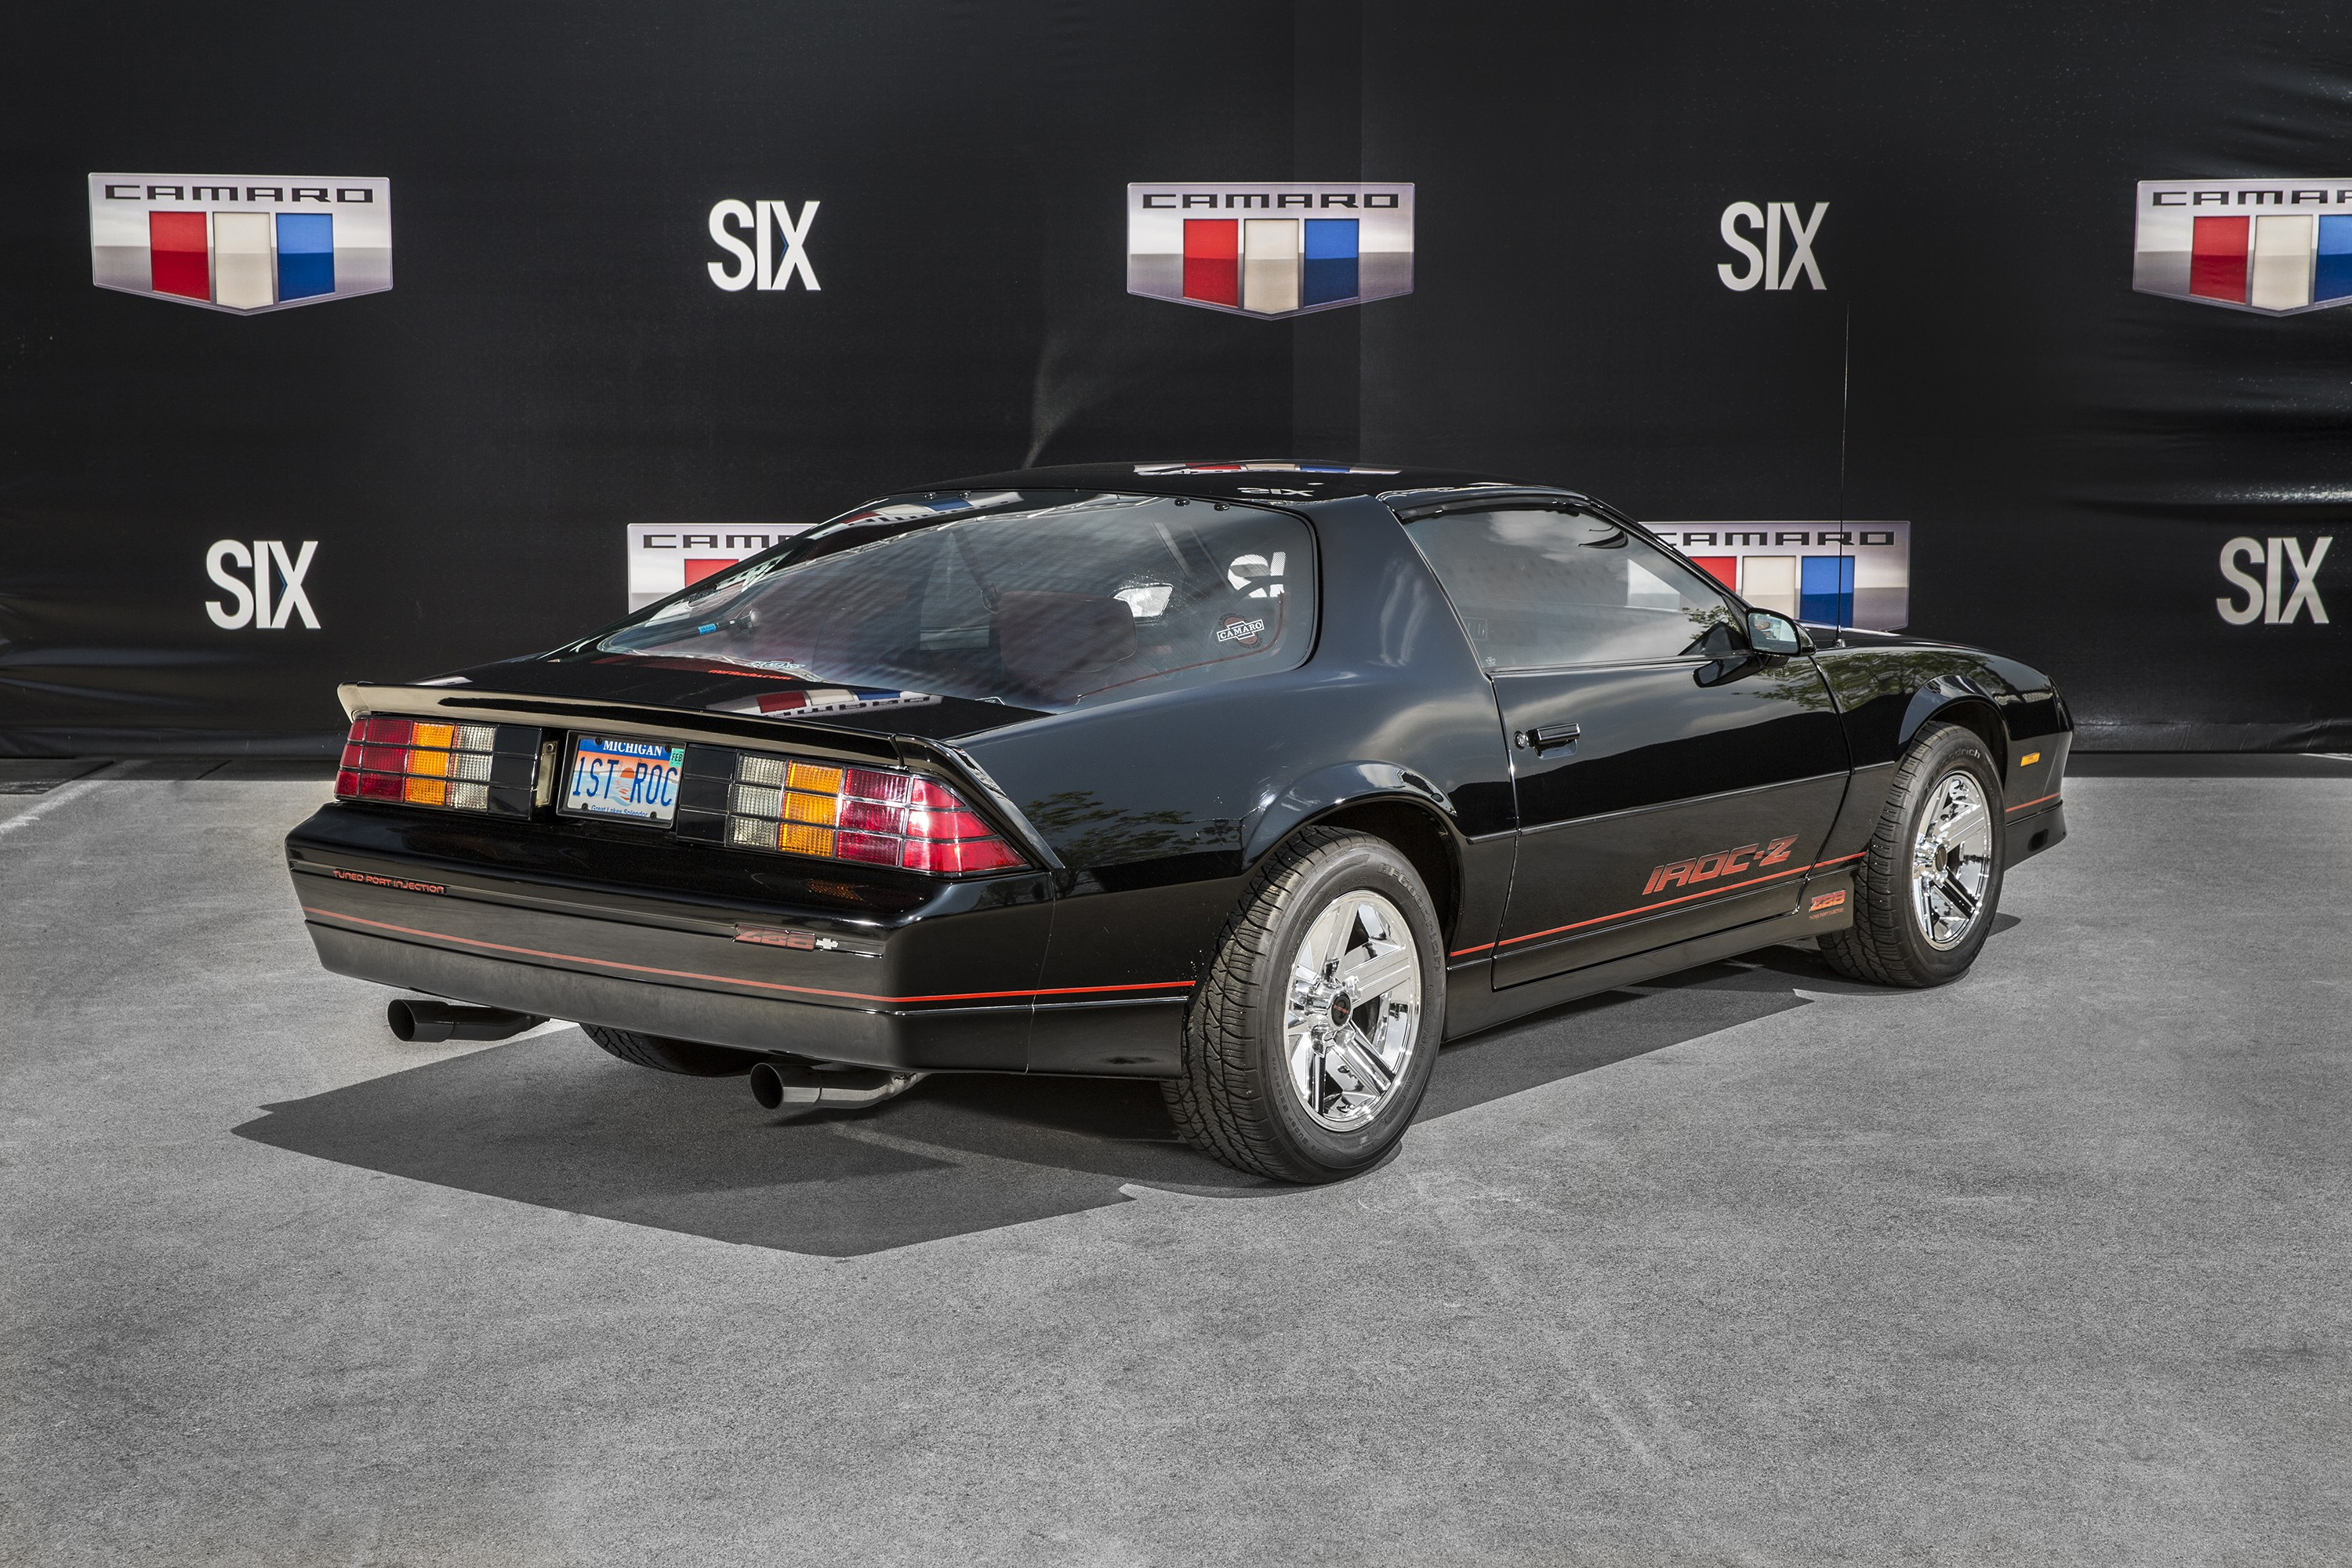 Heres How The Chevrolet Camaro Changed From 1966 To Present Day Chevy Rs Ss 1985 Iroc Z 1993 Z28